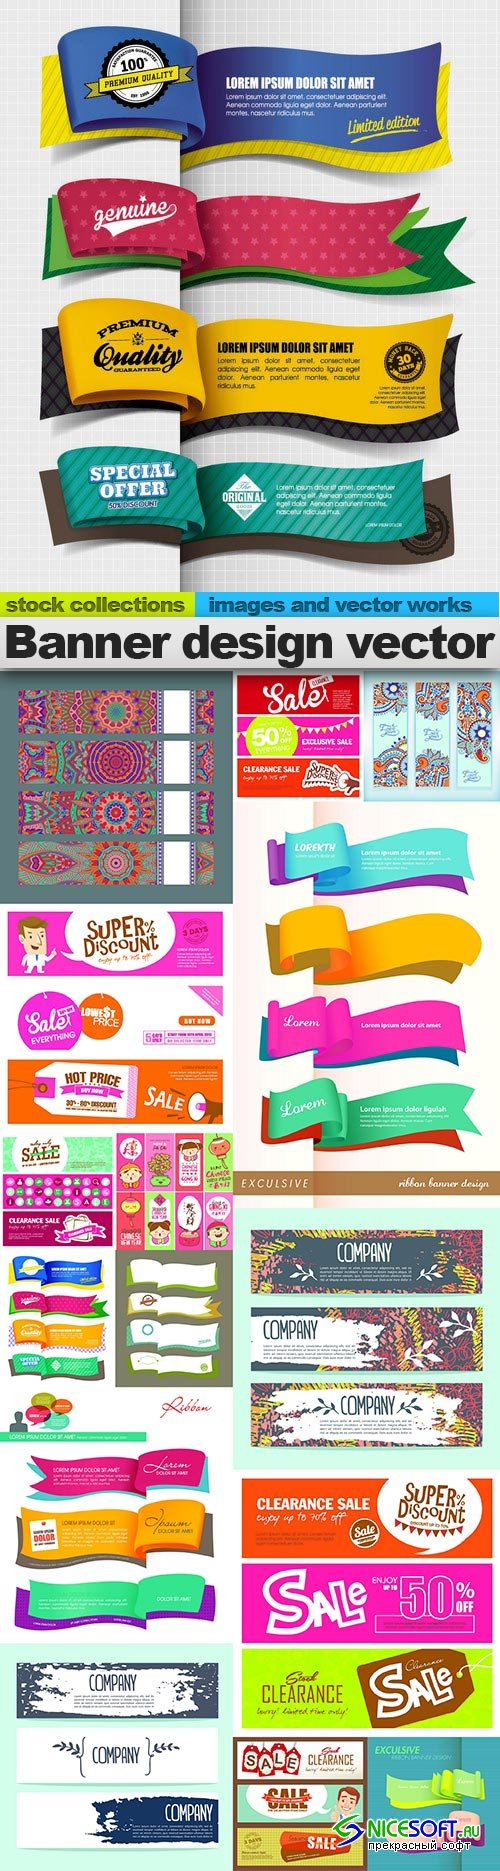 Banner design vector, 15 x EPS